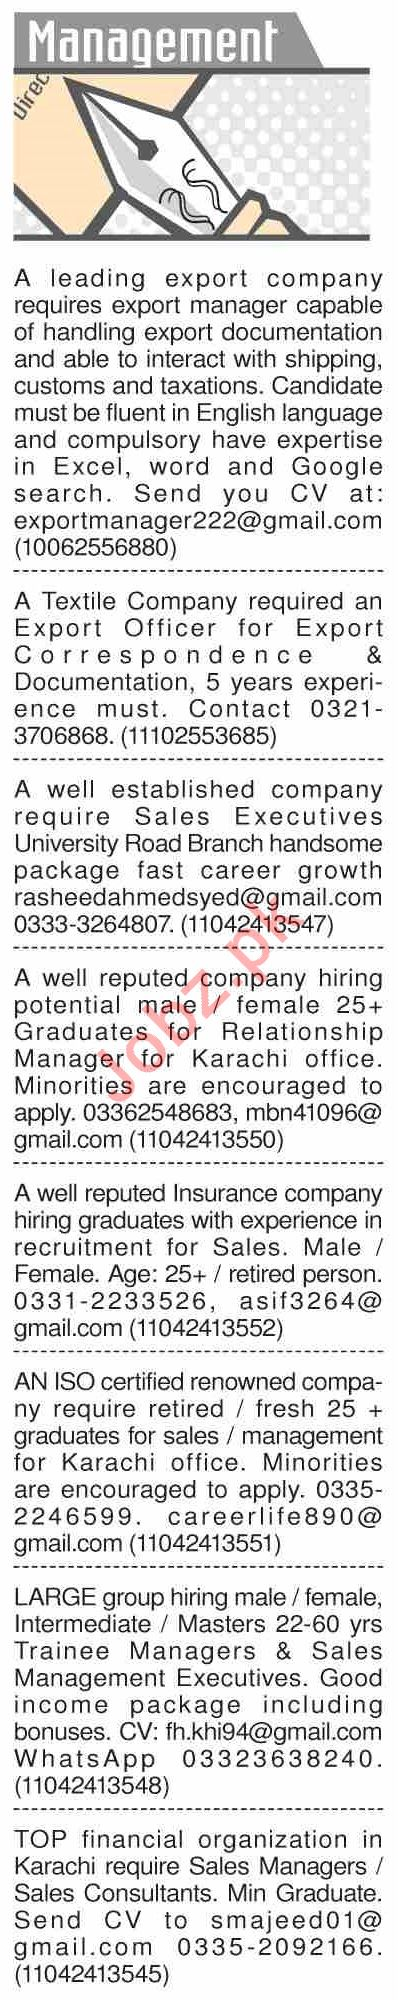 Dawn Sunday Classified Ads 4th Aug 2019 for Management